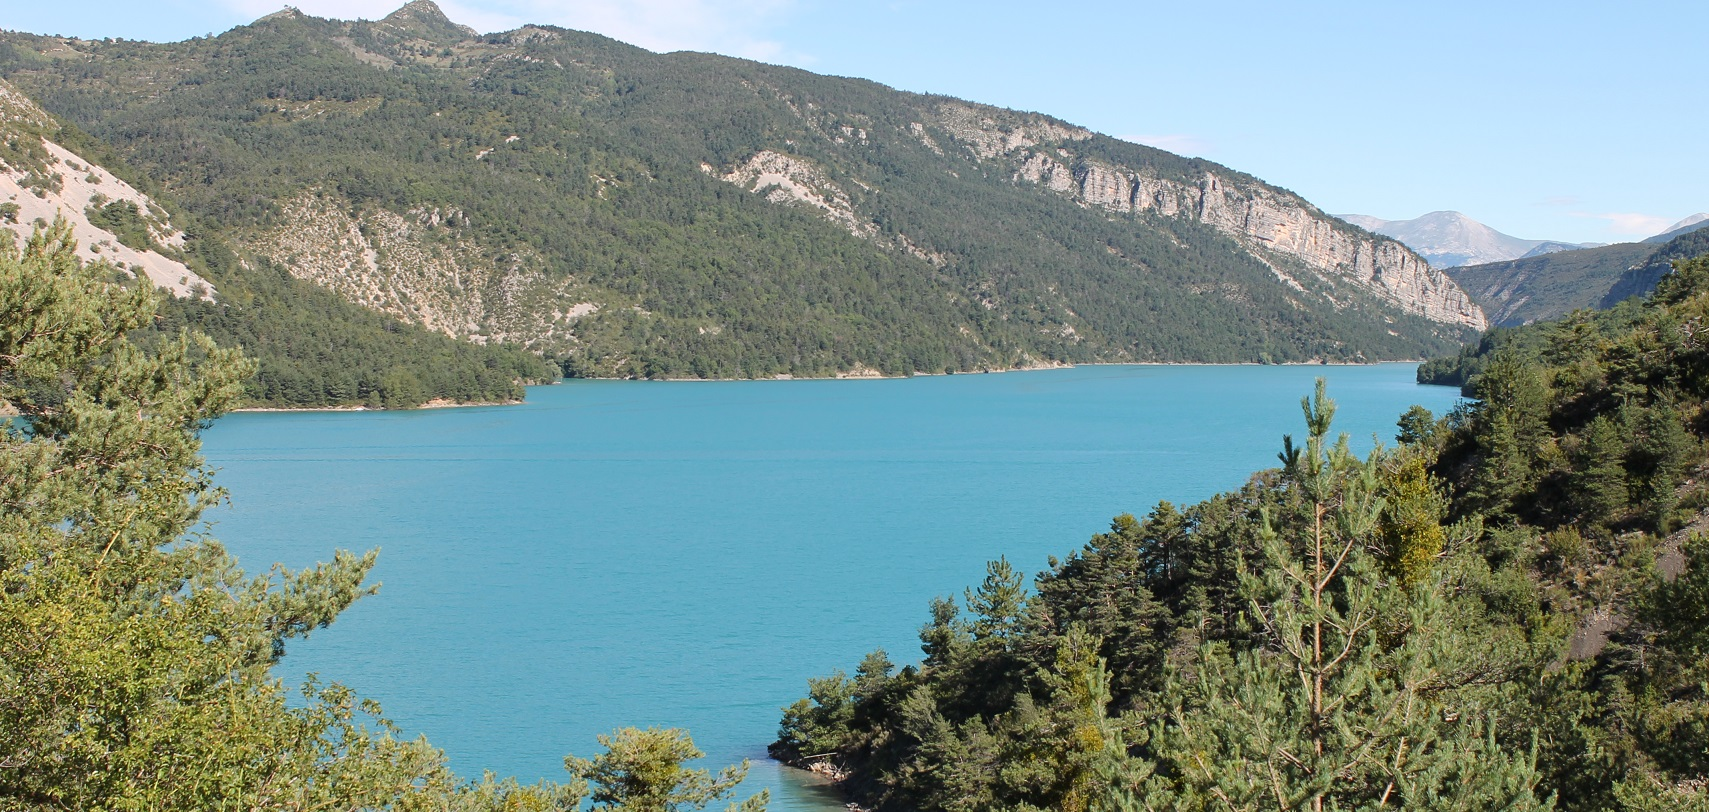 The Castillon lake